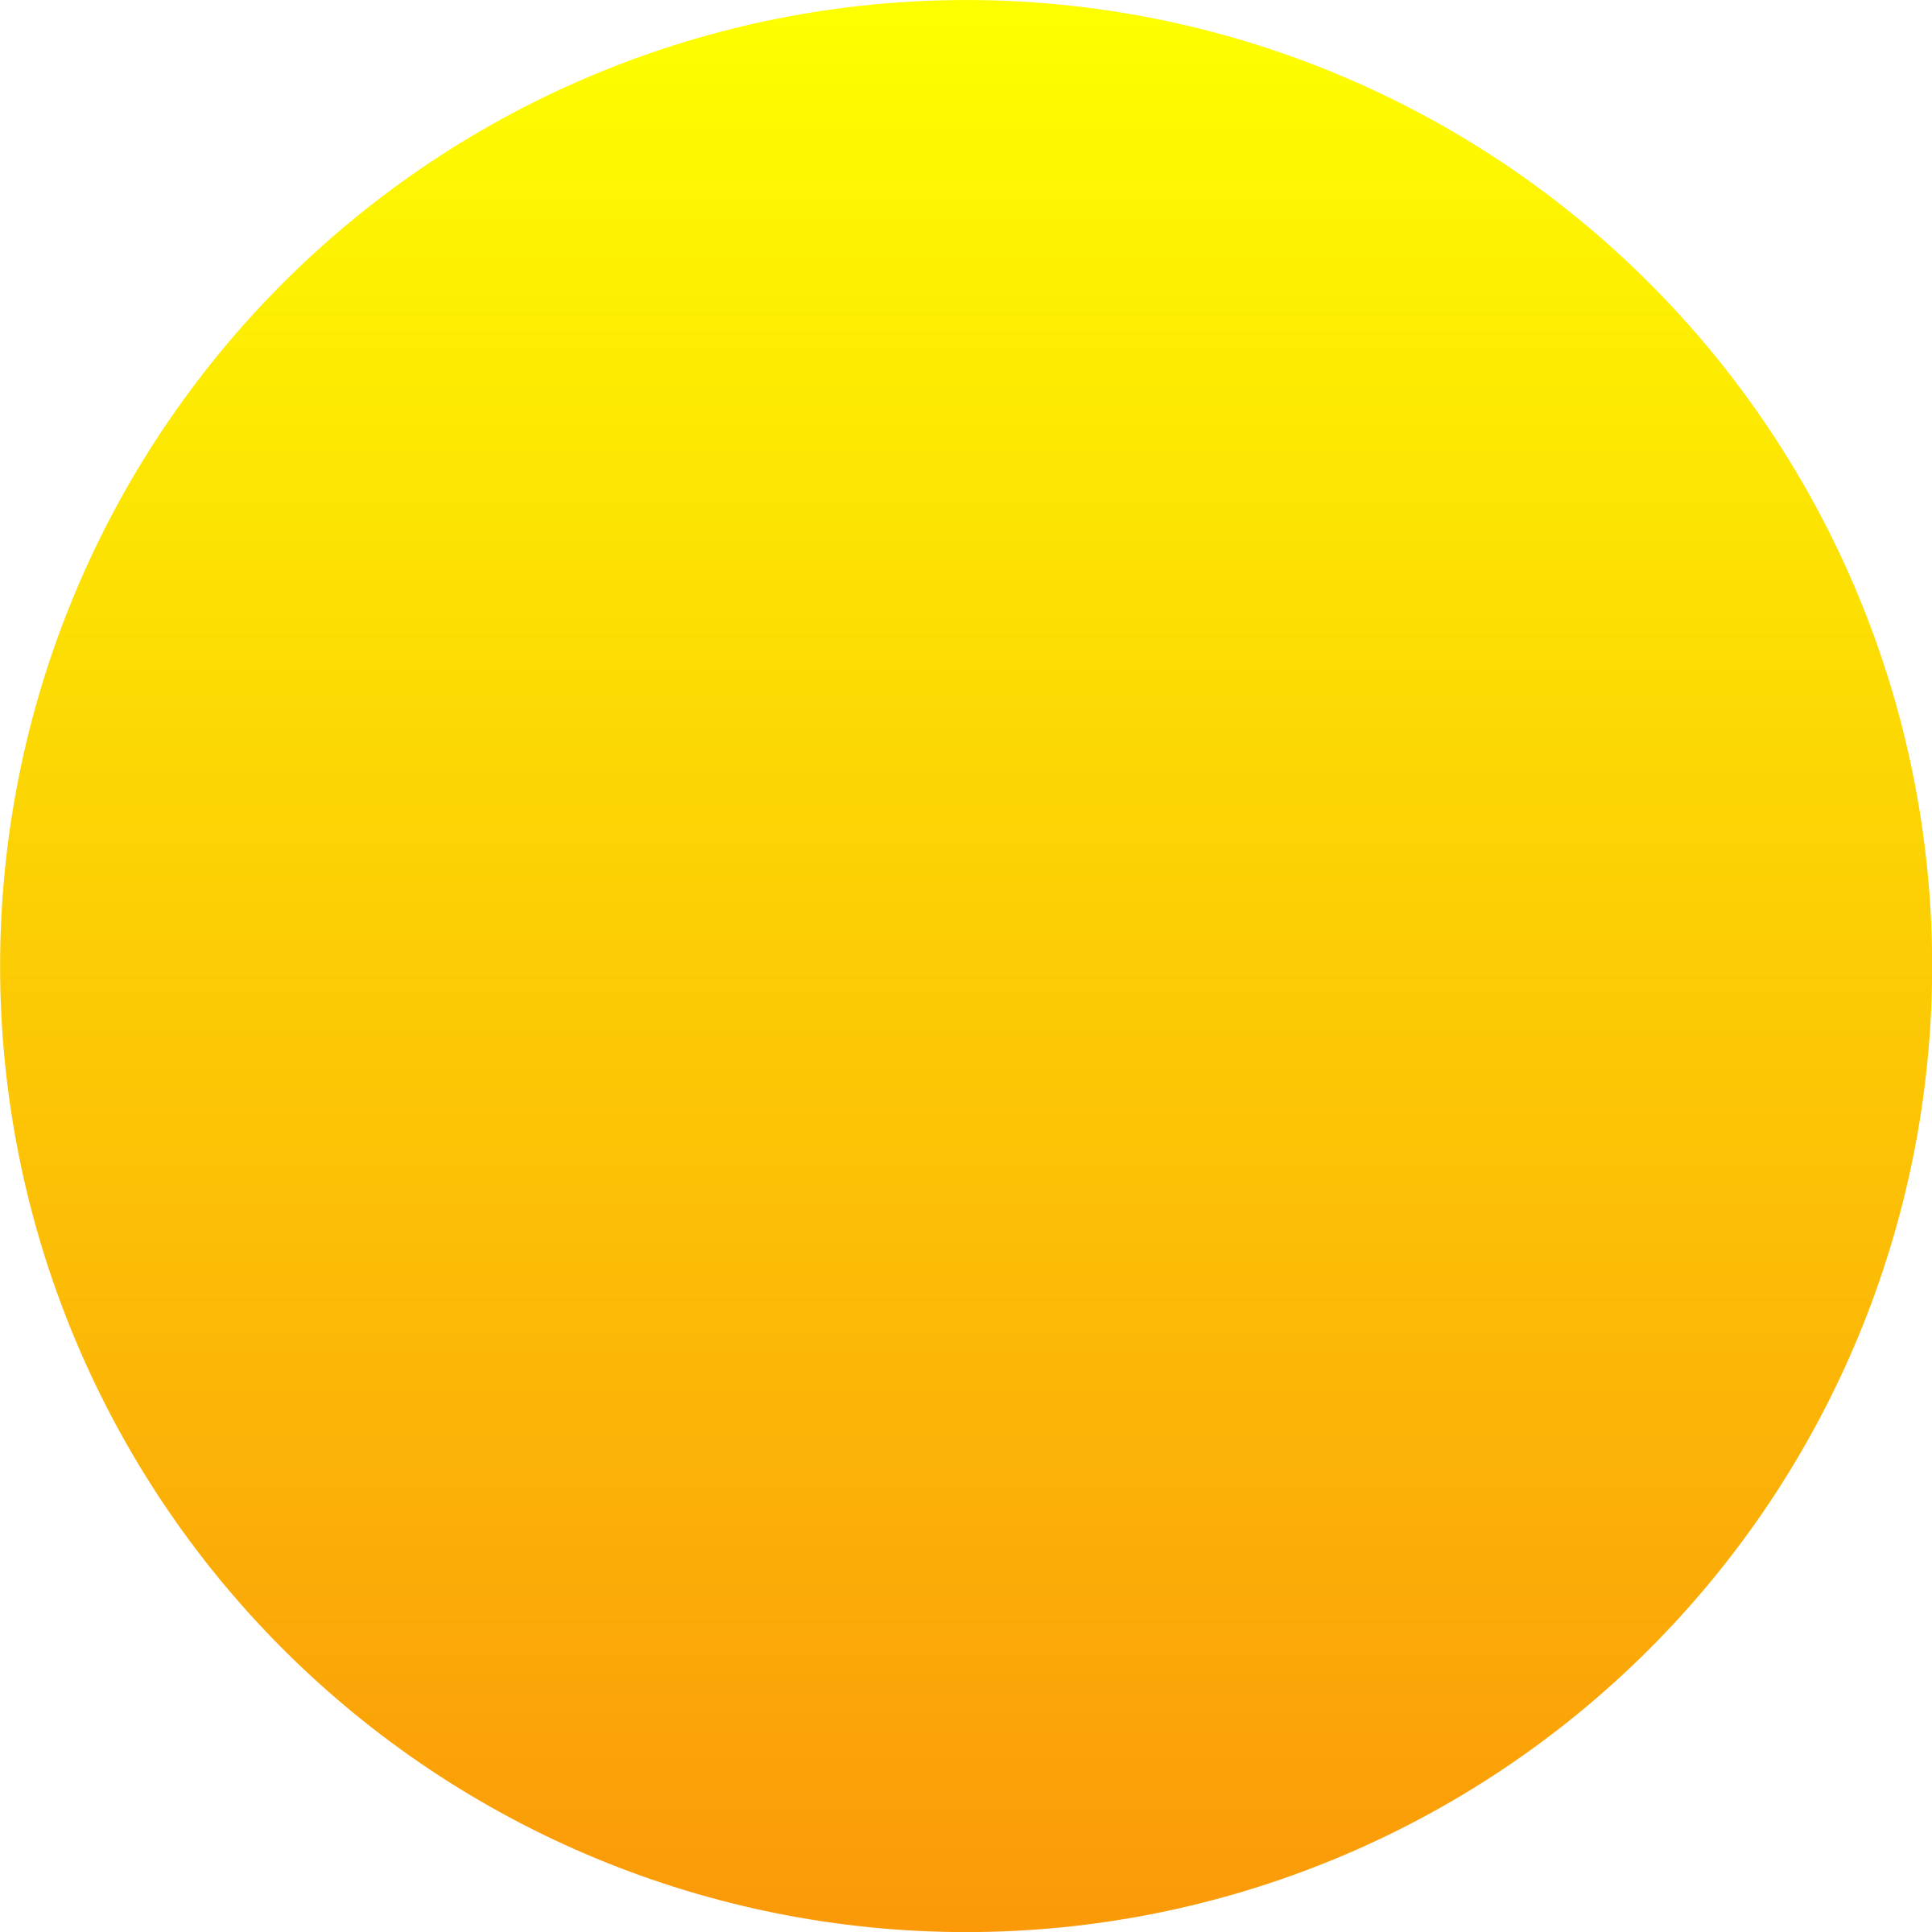 Yellow Sun Clipart Yellow sun clipart and images Orange Moon Clipart